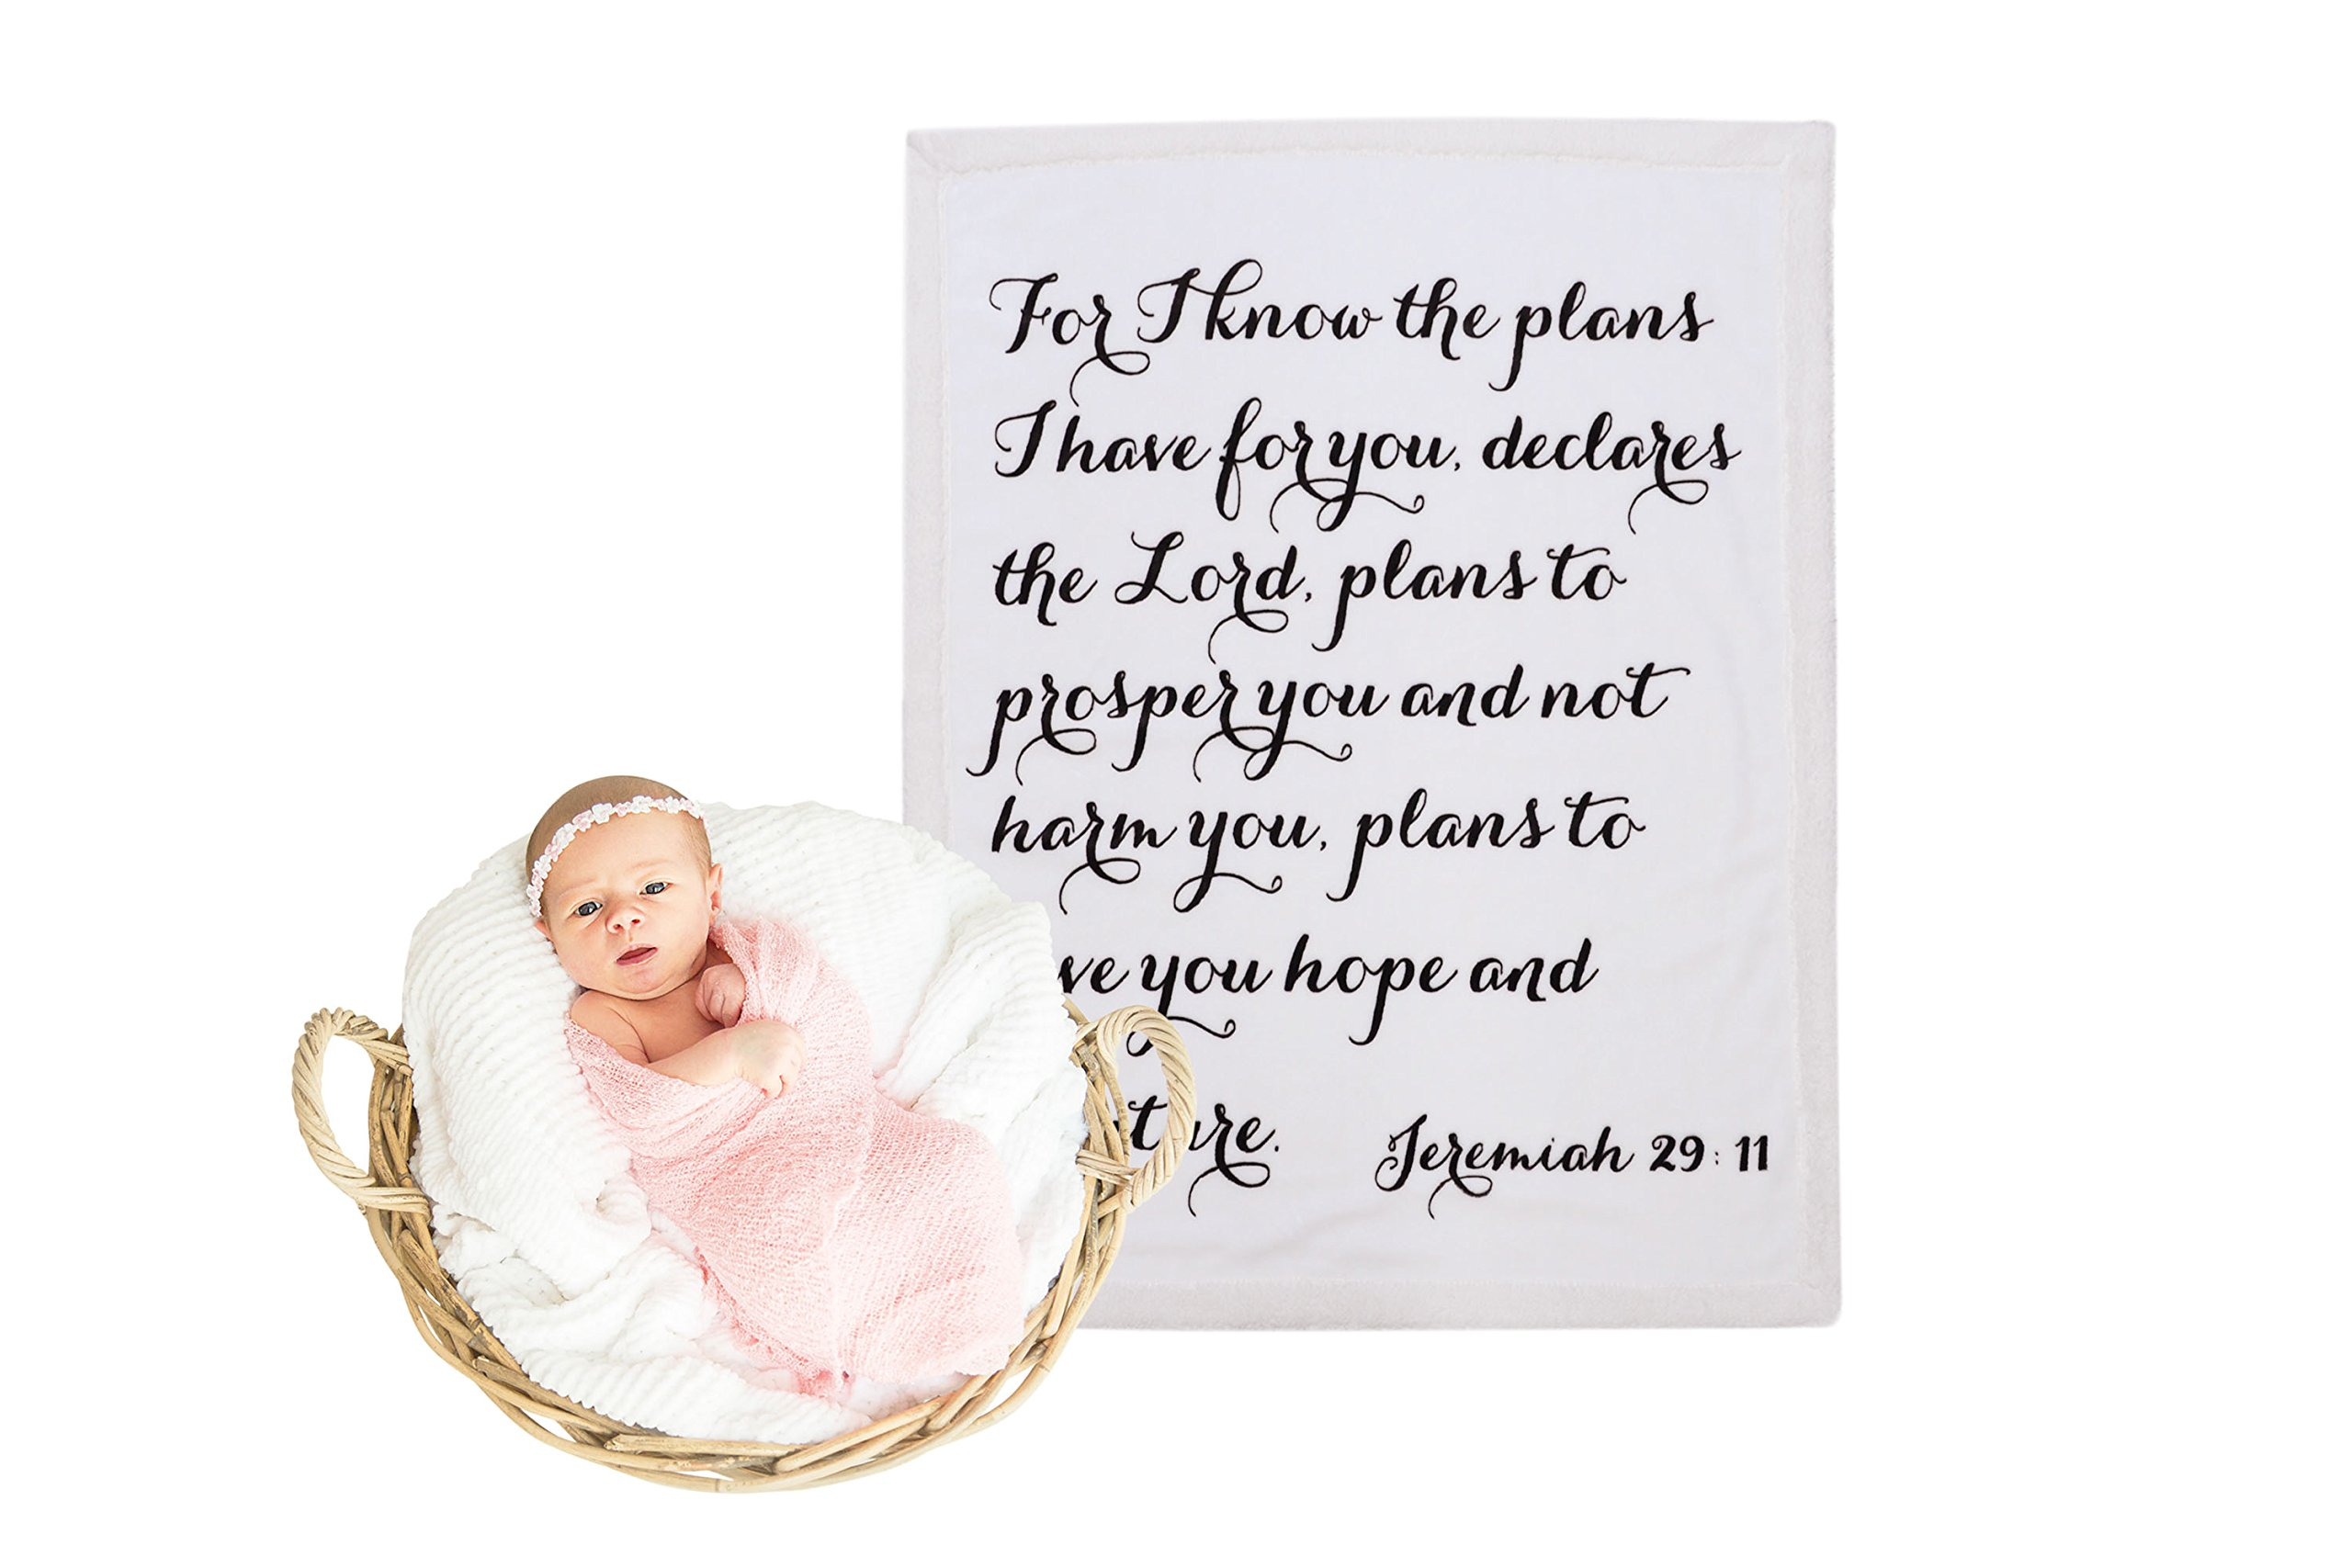 Religious Scripture Throw Blanket for Baby or Children   Jeremiah 29:11   Best Boy or Girl Shower or Birthday Gift   Ivory on Ivory Fleece Sherpa by Scripture Strong (Image #9)